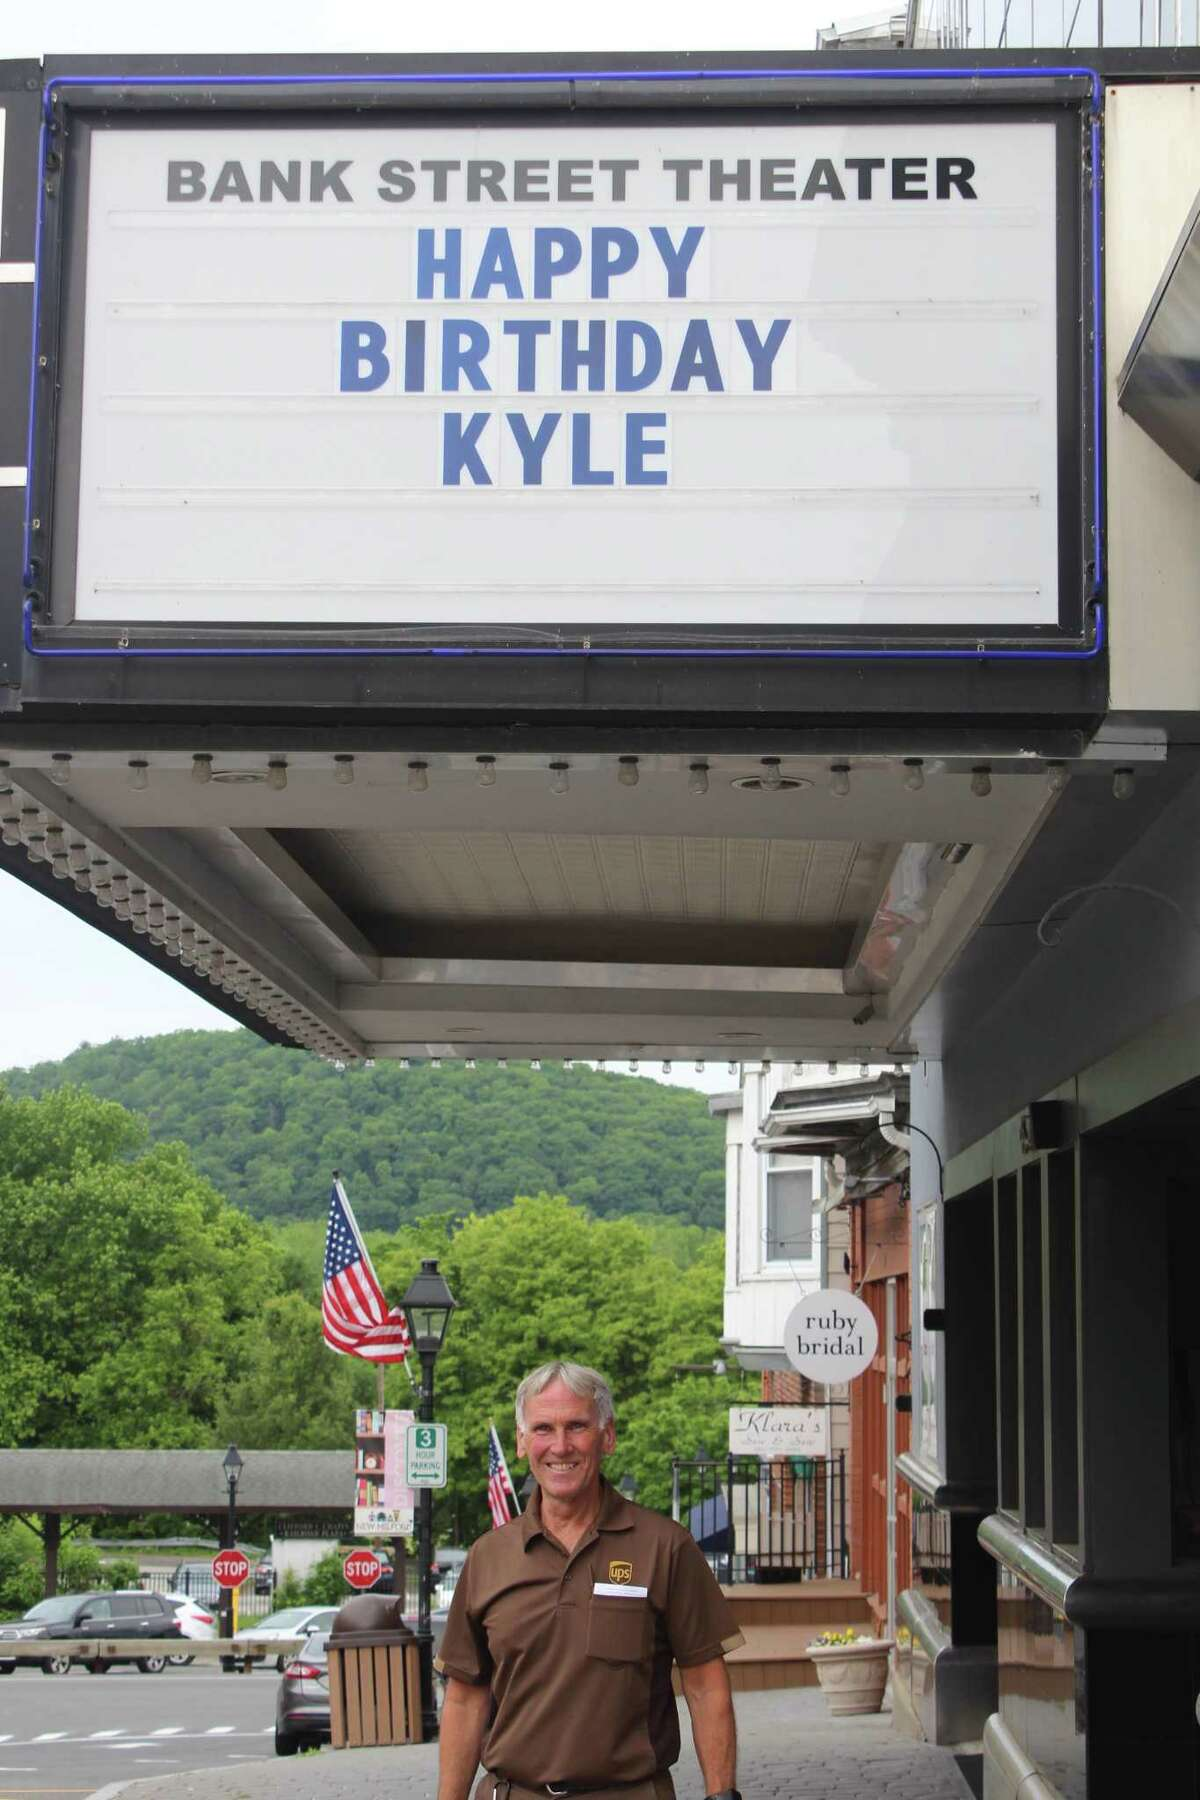 UPS driver Kyle Macomber, who turned 60 June 3, was wished a happy birthday from Bank Street Theater.